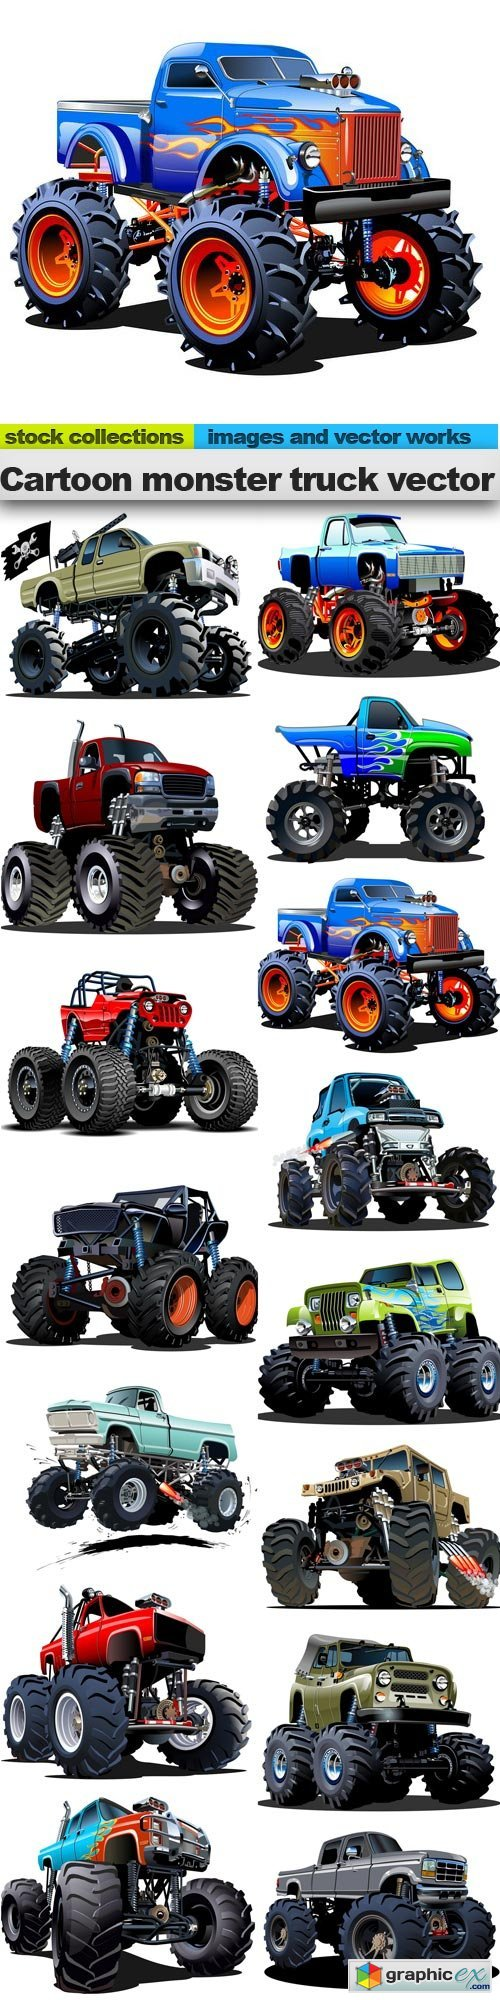 Cartoon monster truck vector, 15 x EPS